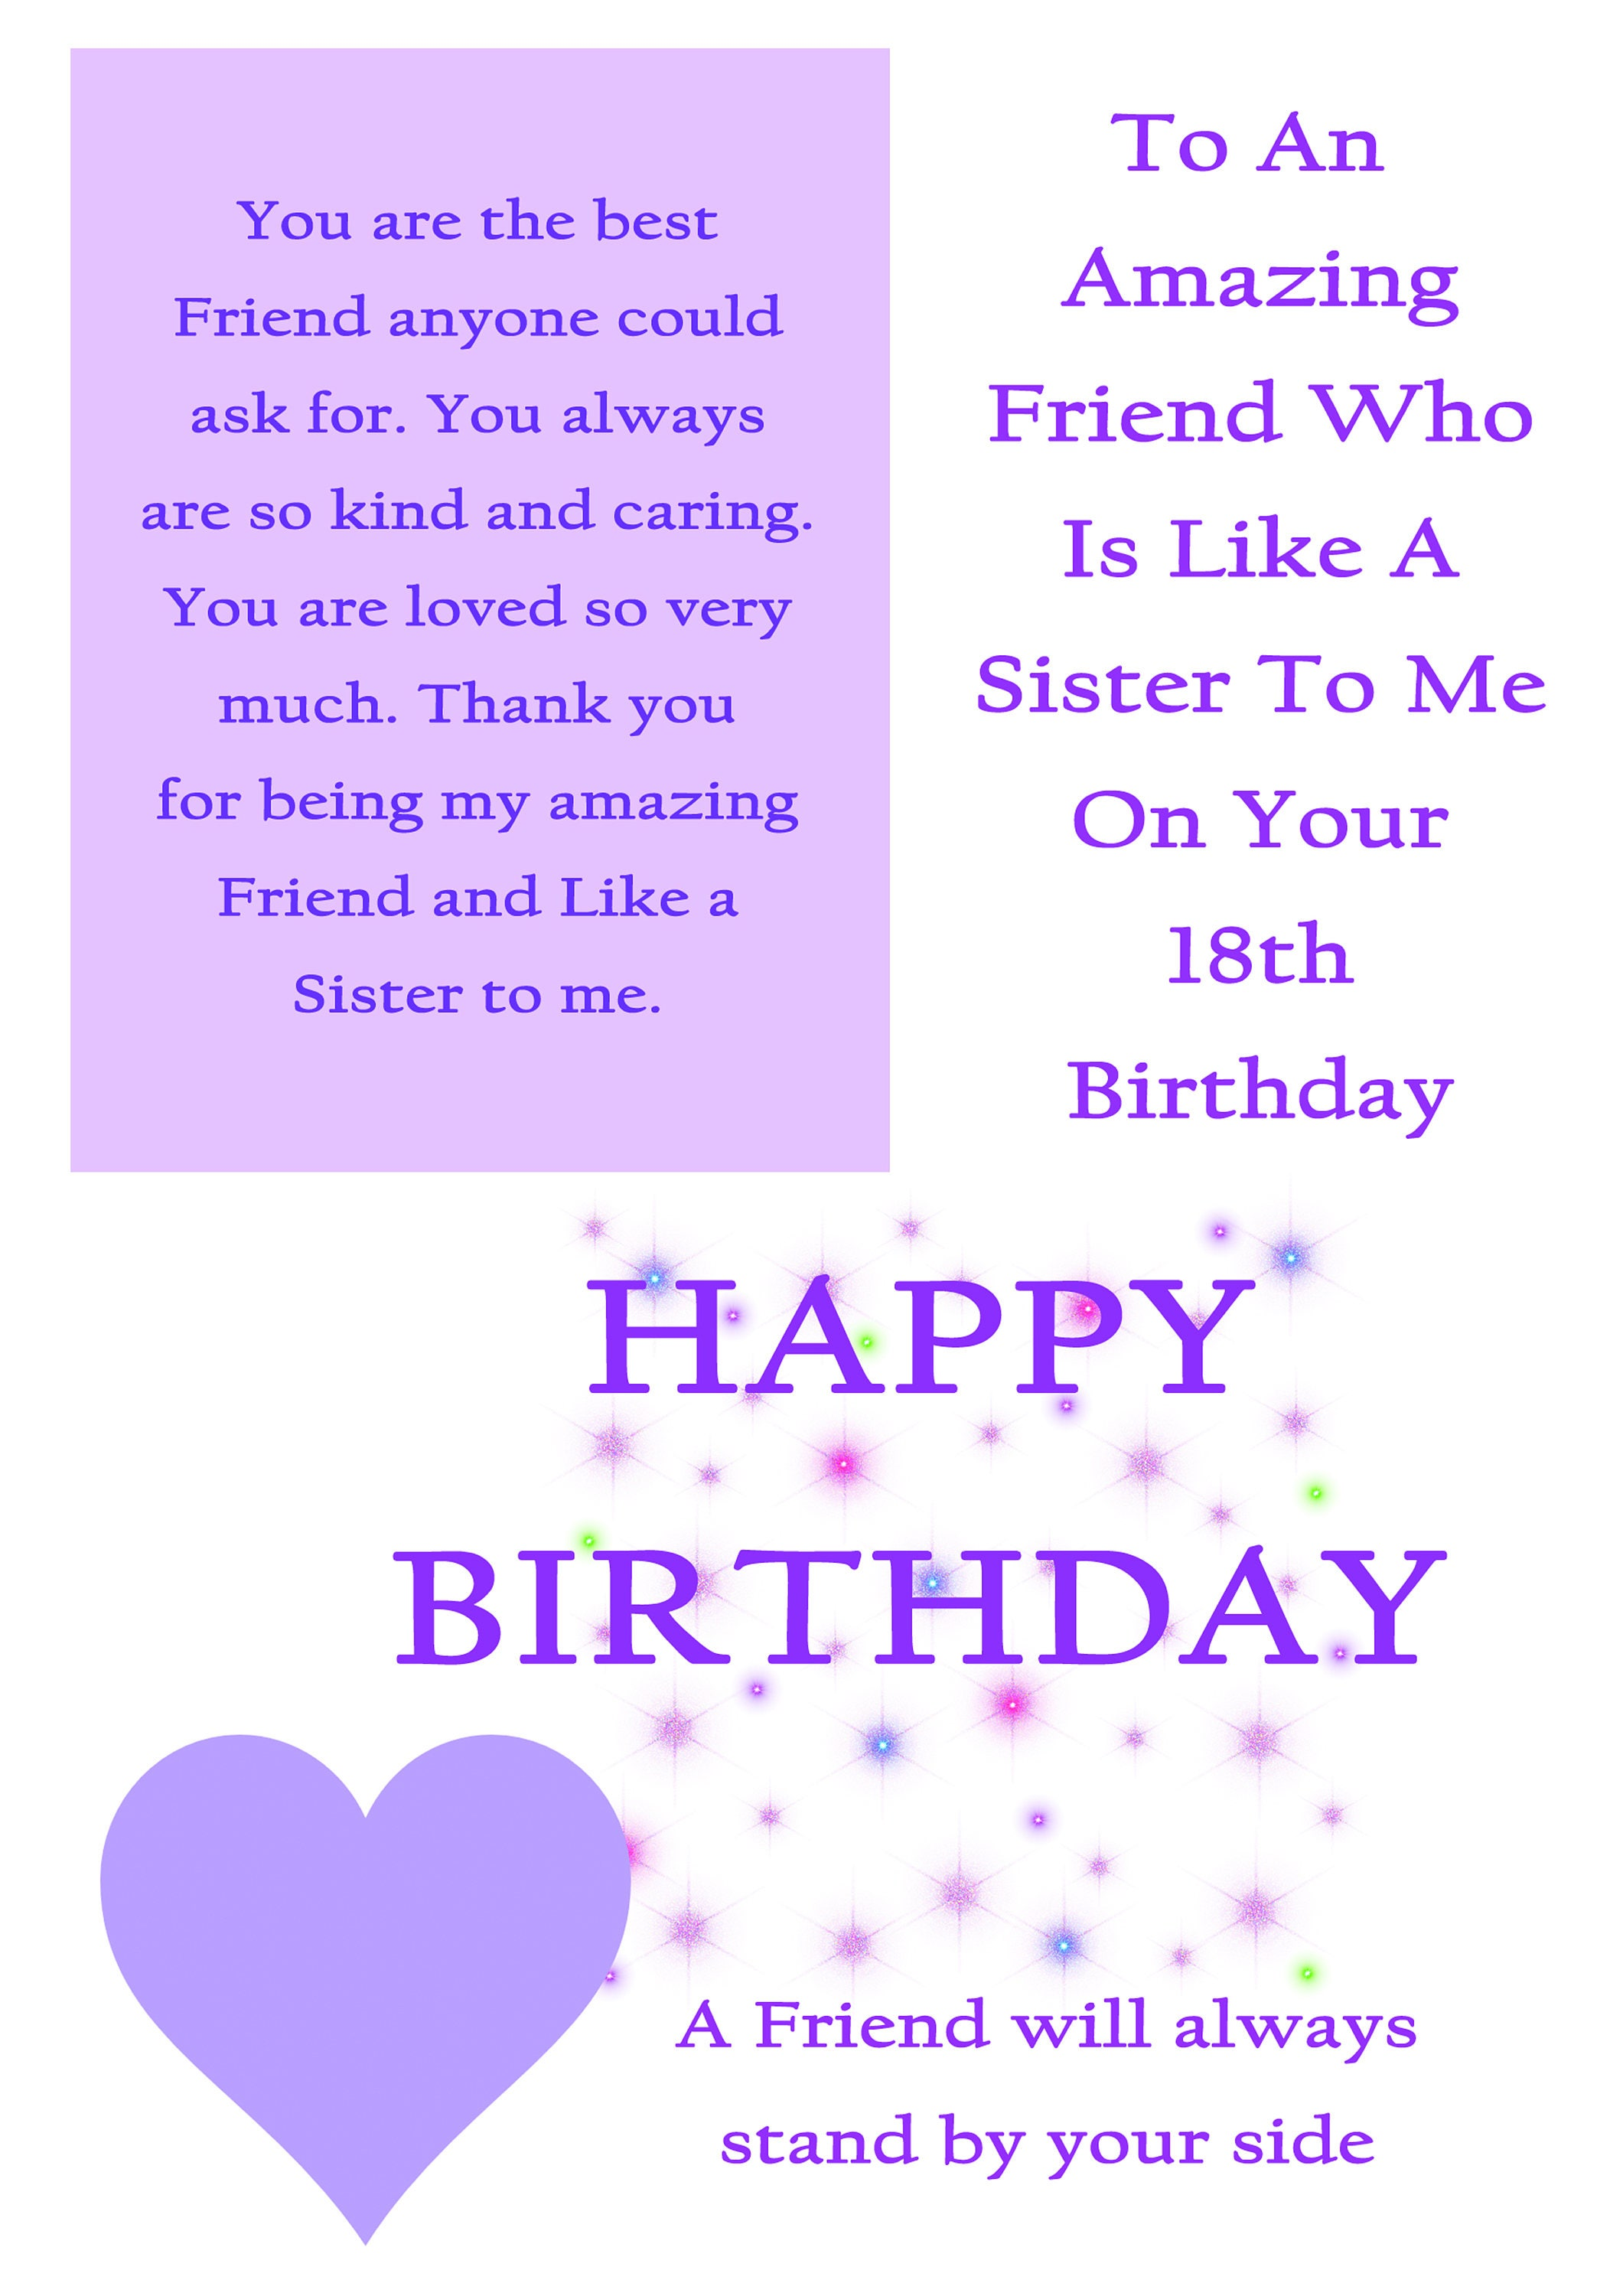 Friend Like A Sister 18 Birthday Card With Removable Laminate